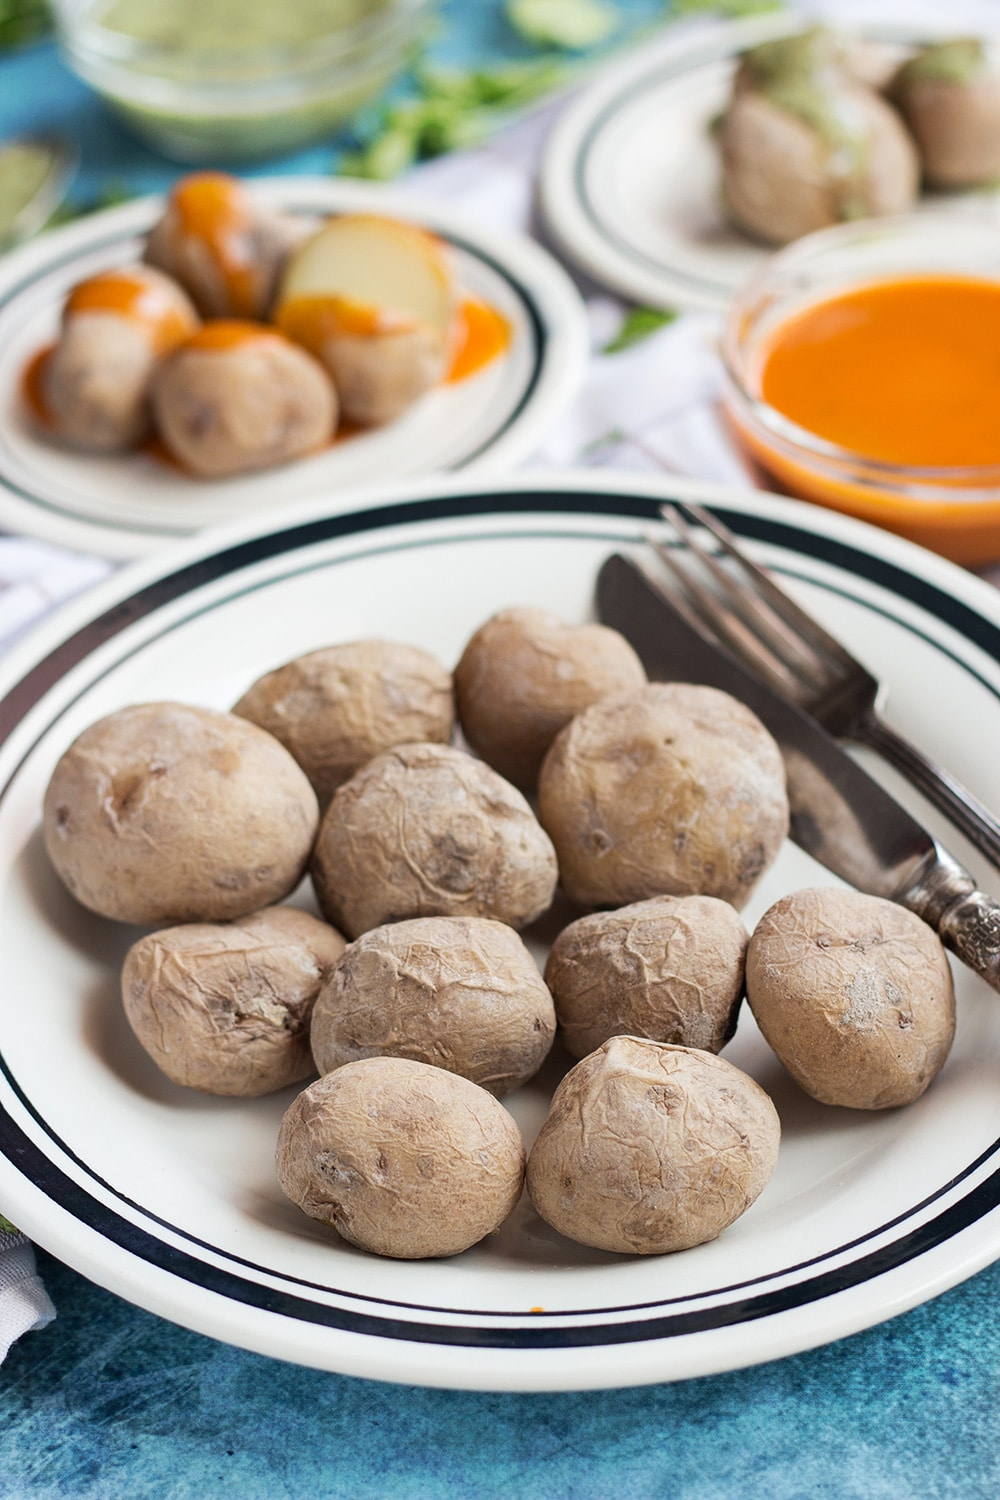 Canarian Wrinkly Potatoes (Papas Arrugadas) make a perfect side dish to any meal. They are really easy to make and require only 2 ingredients!   cookingtheglobe.com